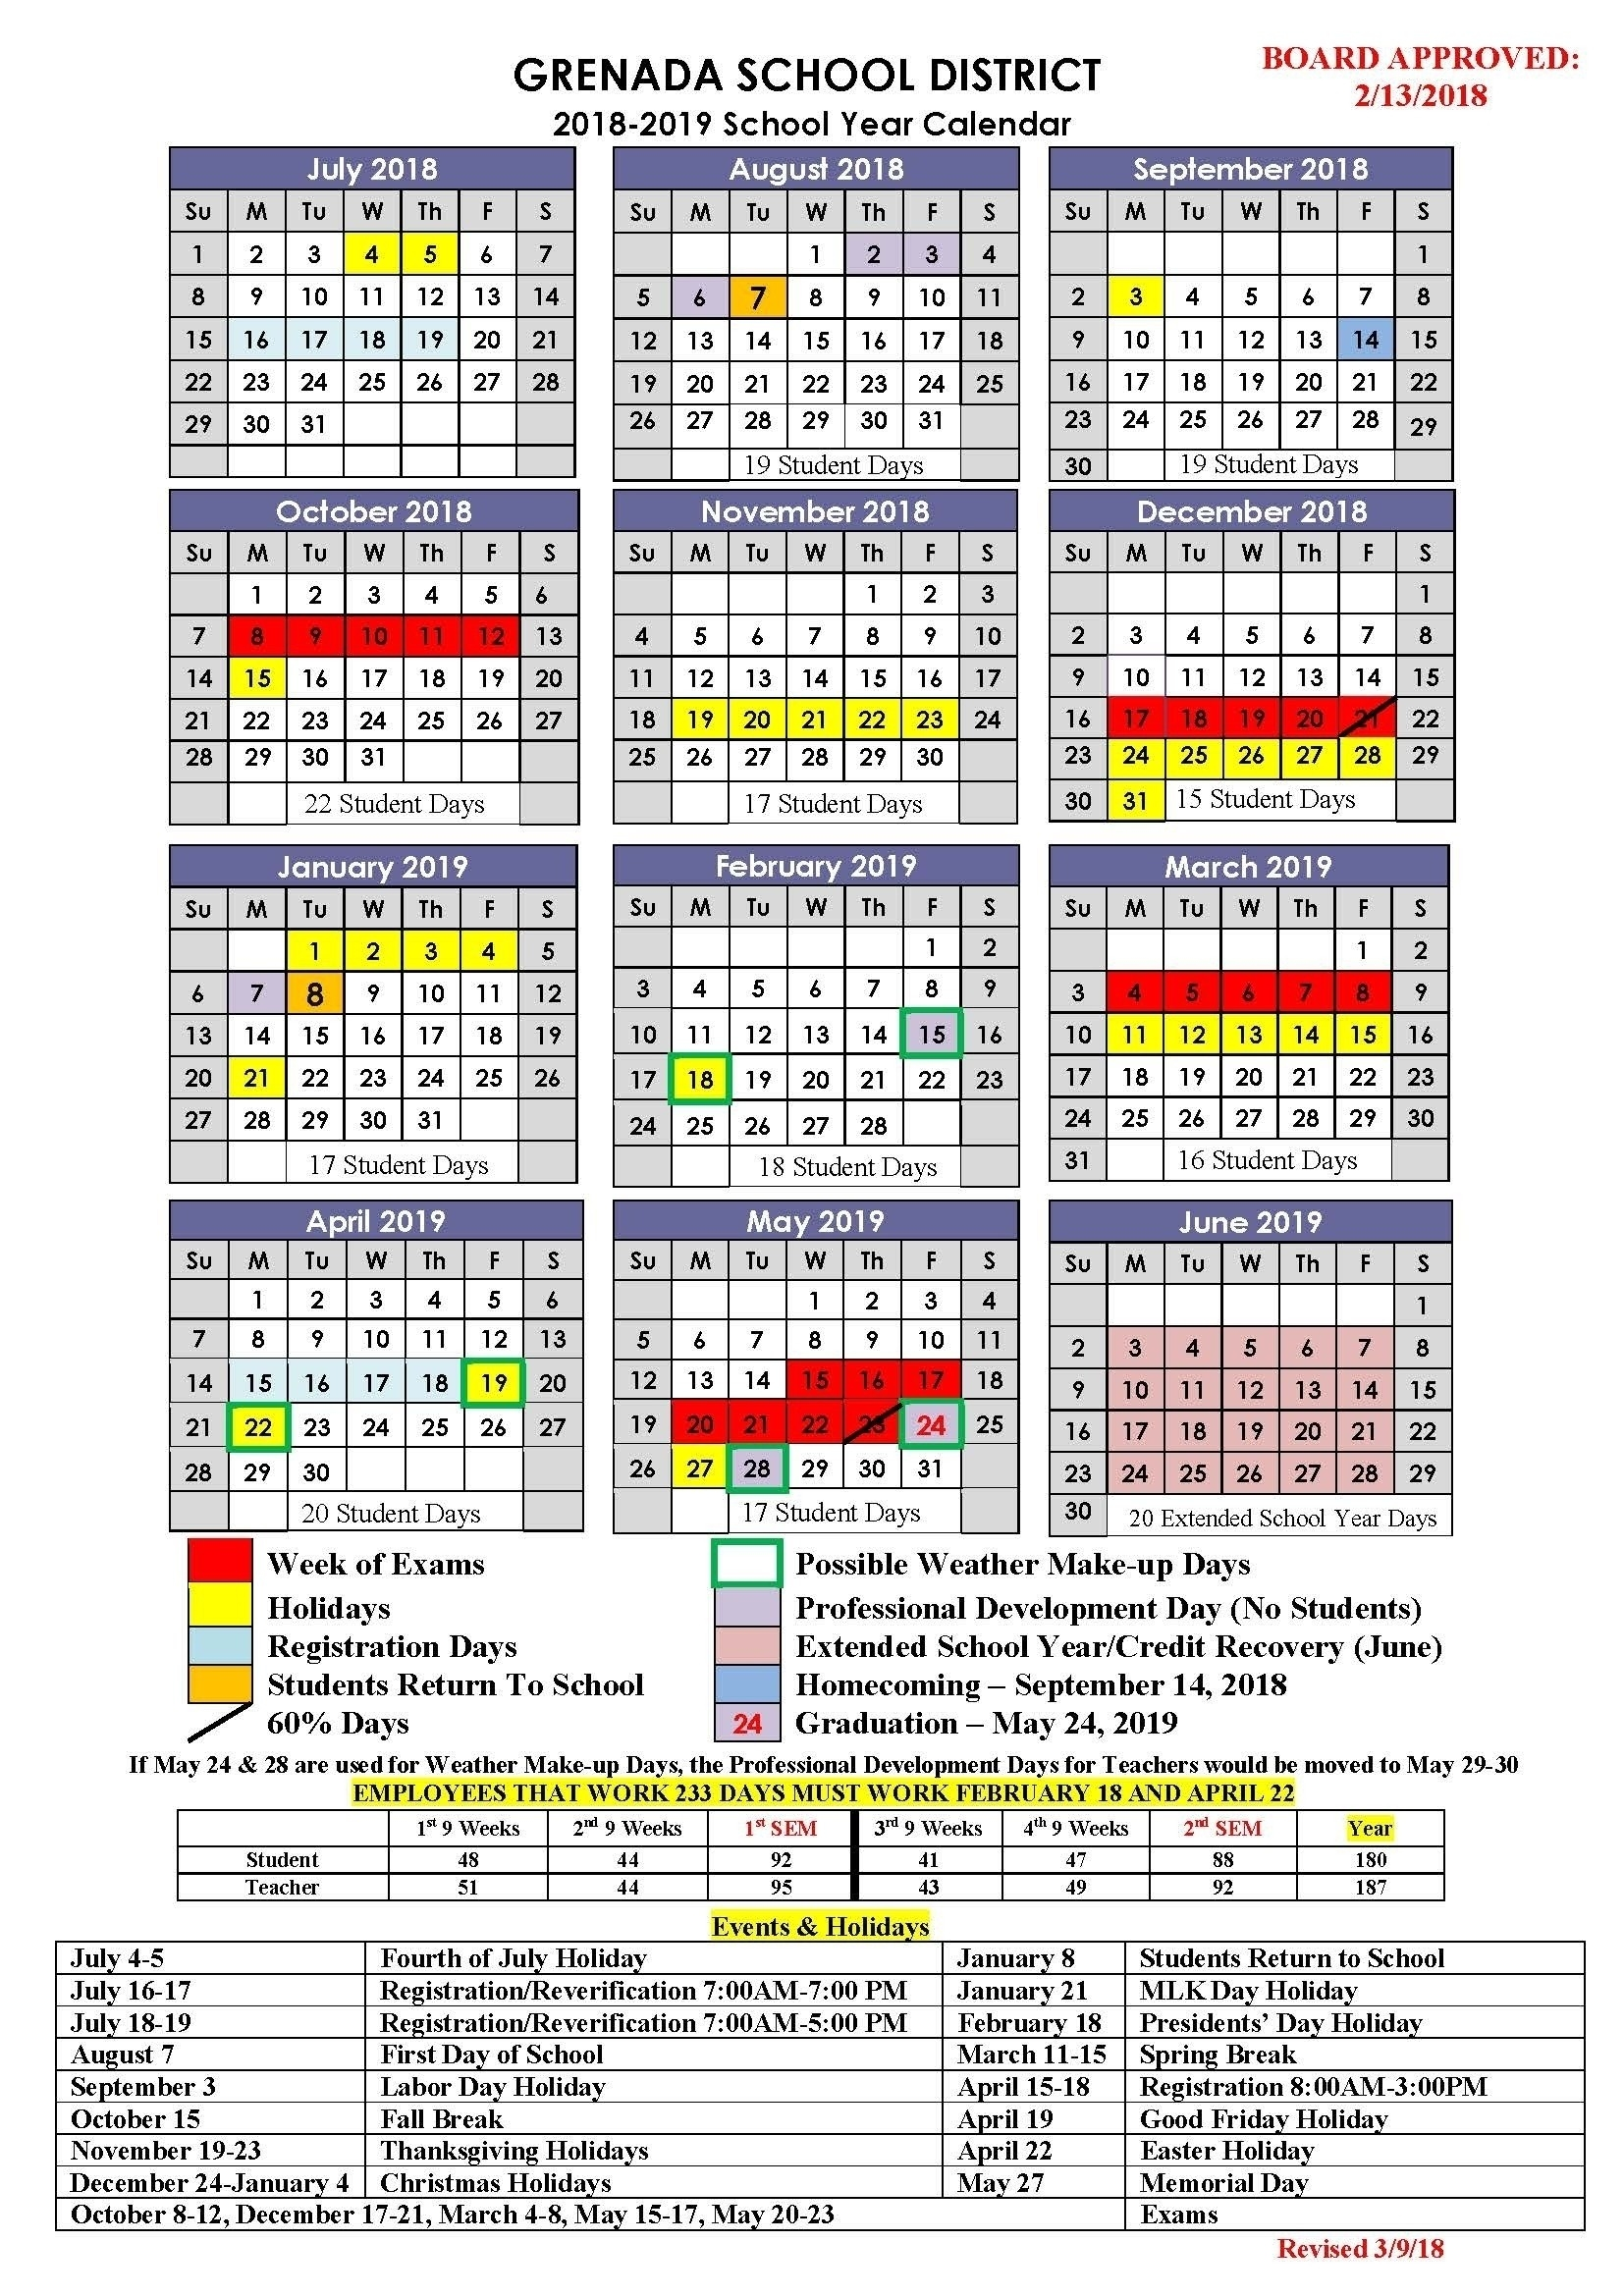 District 7 School Calendar 2020-19 | Calendar Design Ideas-All The Holidays In Grenada 2020